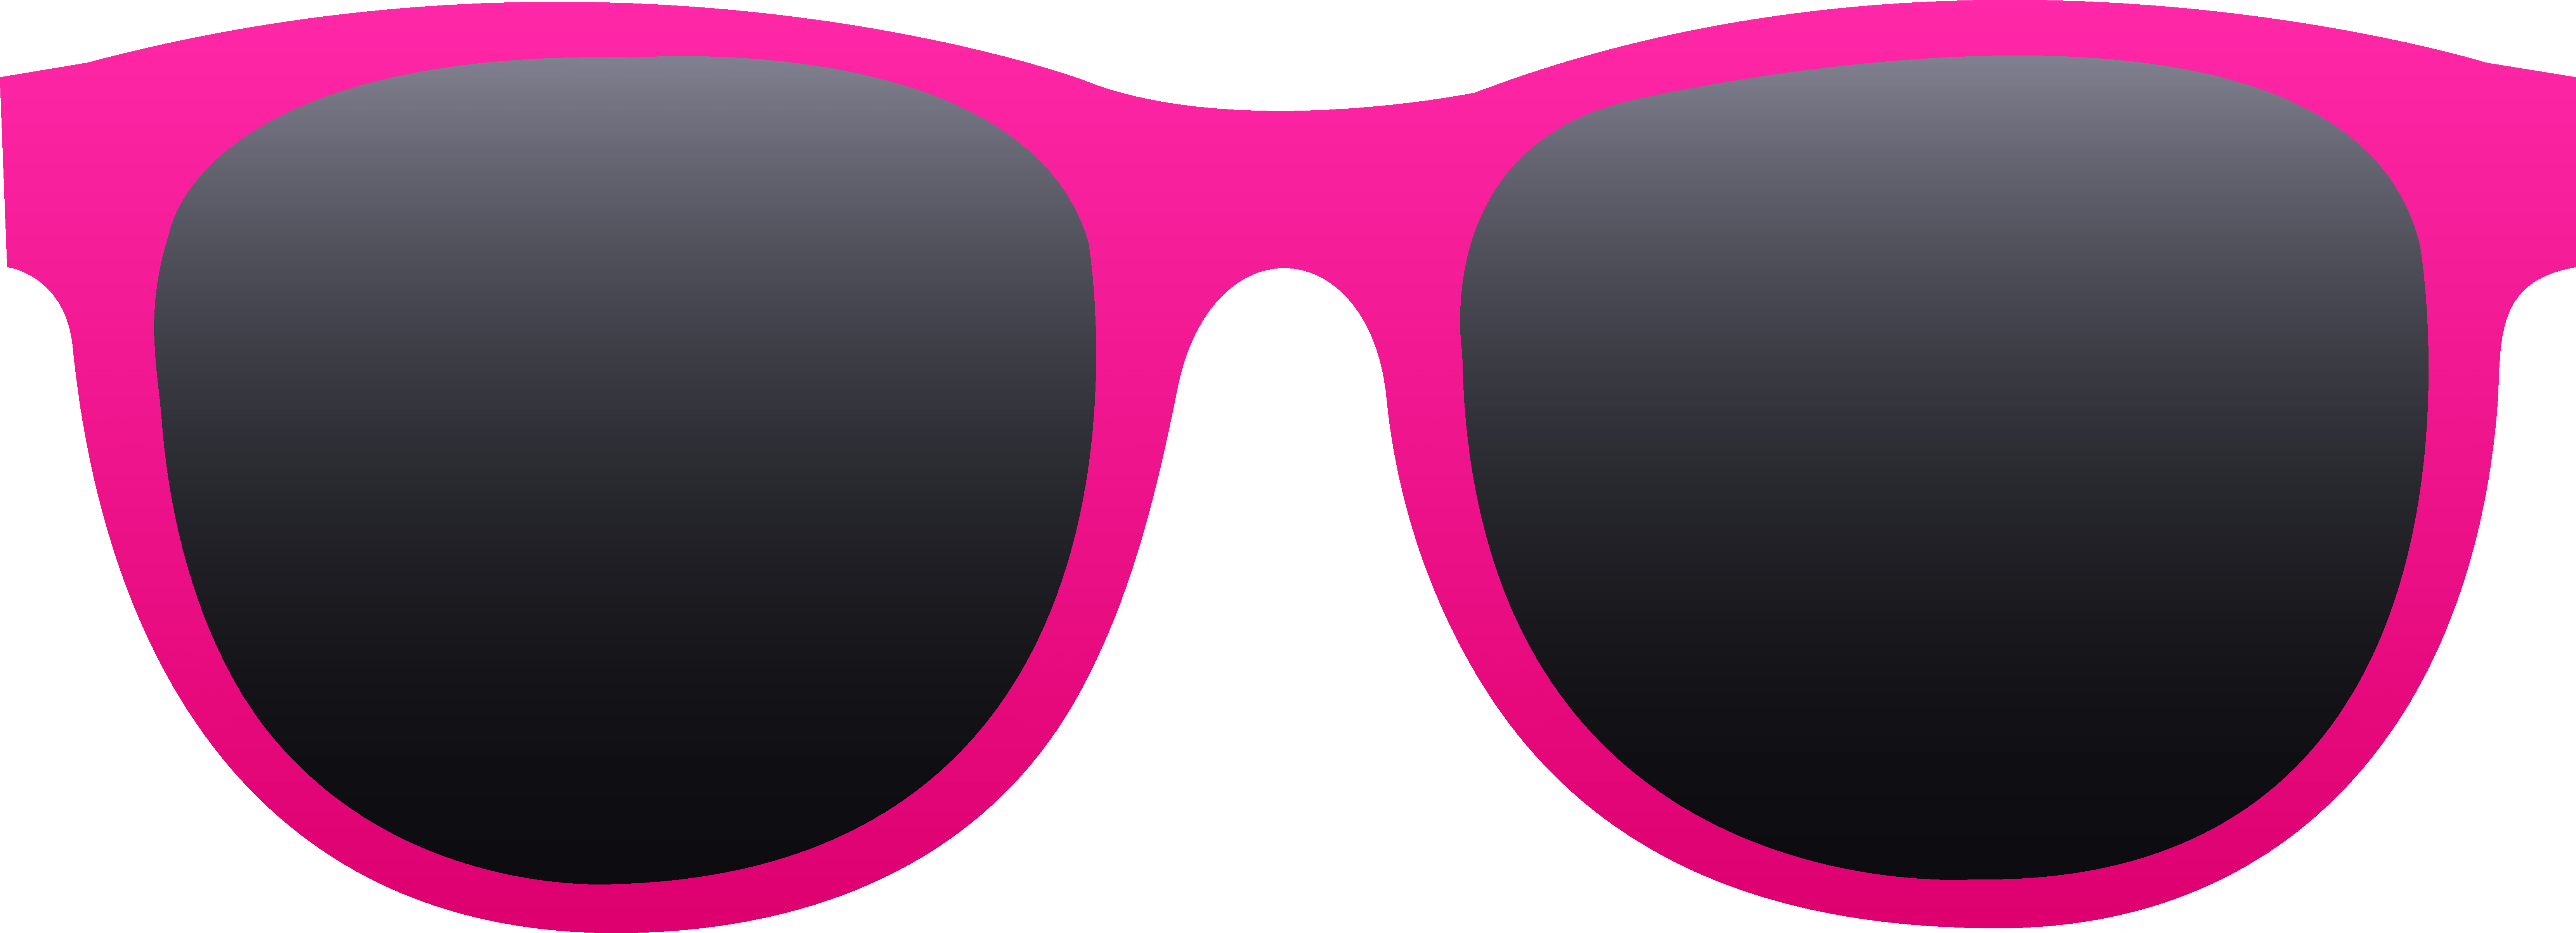 Clipart sun with glasses image transparent library 19 Aviator clipart HUGE FREEBIE! Download for PowerPoint ... image transparent library